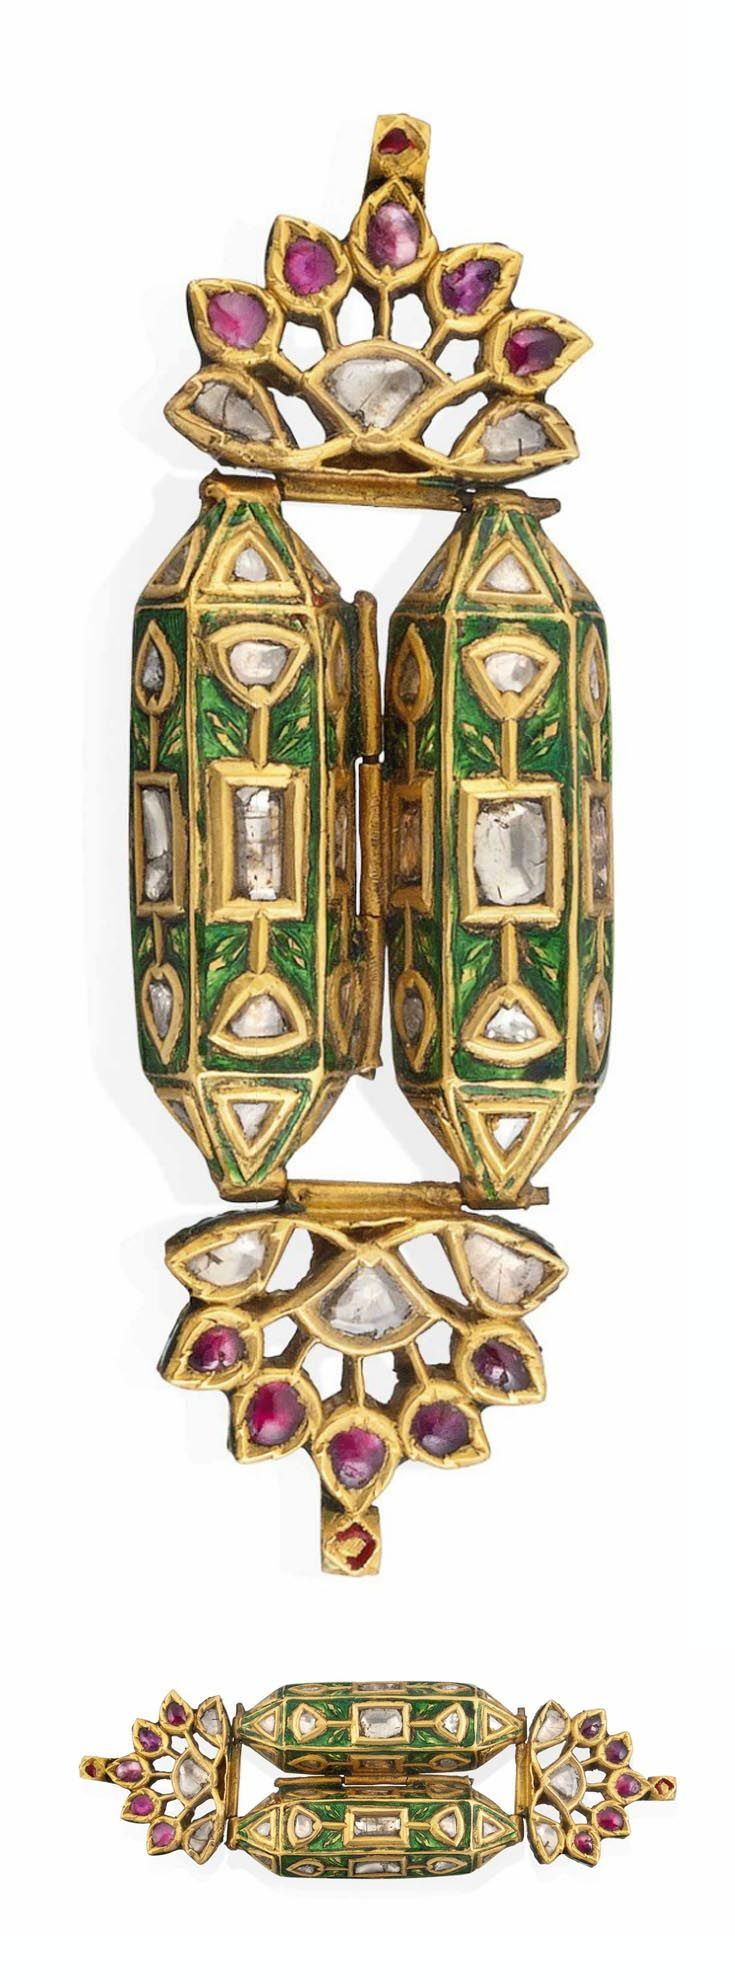 North India - Deccan   Bazuband; gold, enamelled and set with diamonds and foiled red gems. Reverse enamelled. Each of the containers opening to reveal a small compartment.  L: 7.4 cm   19th century   2'750£ ~ sold (Oct '12)